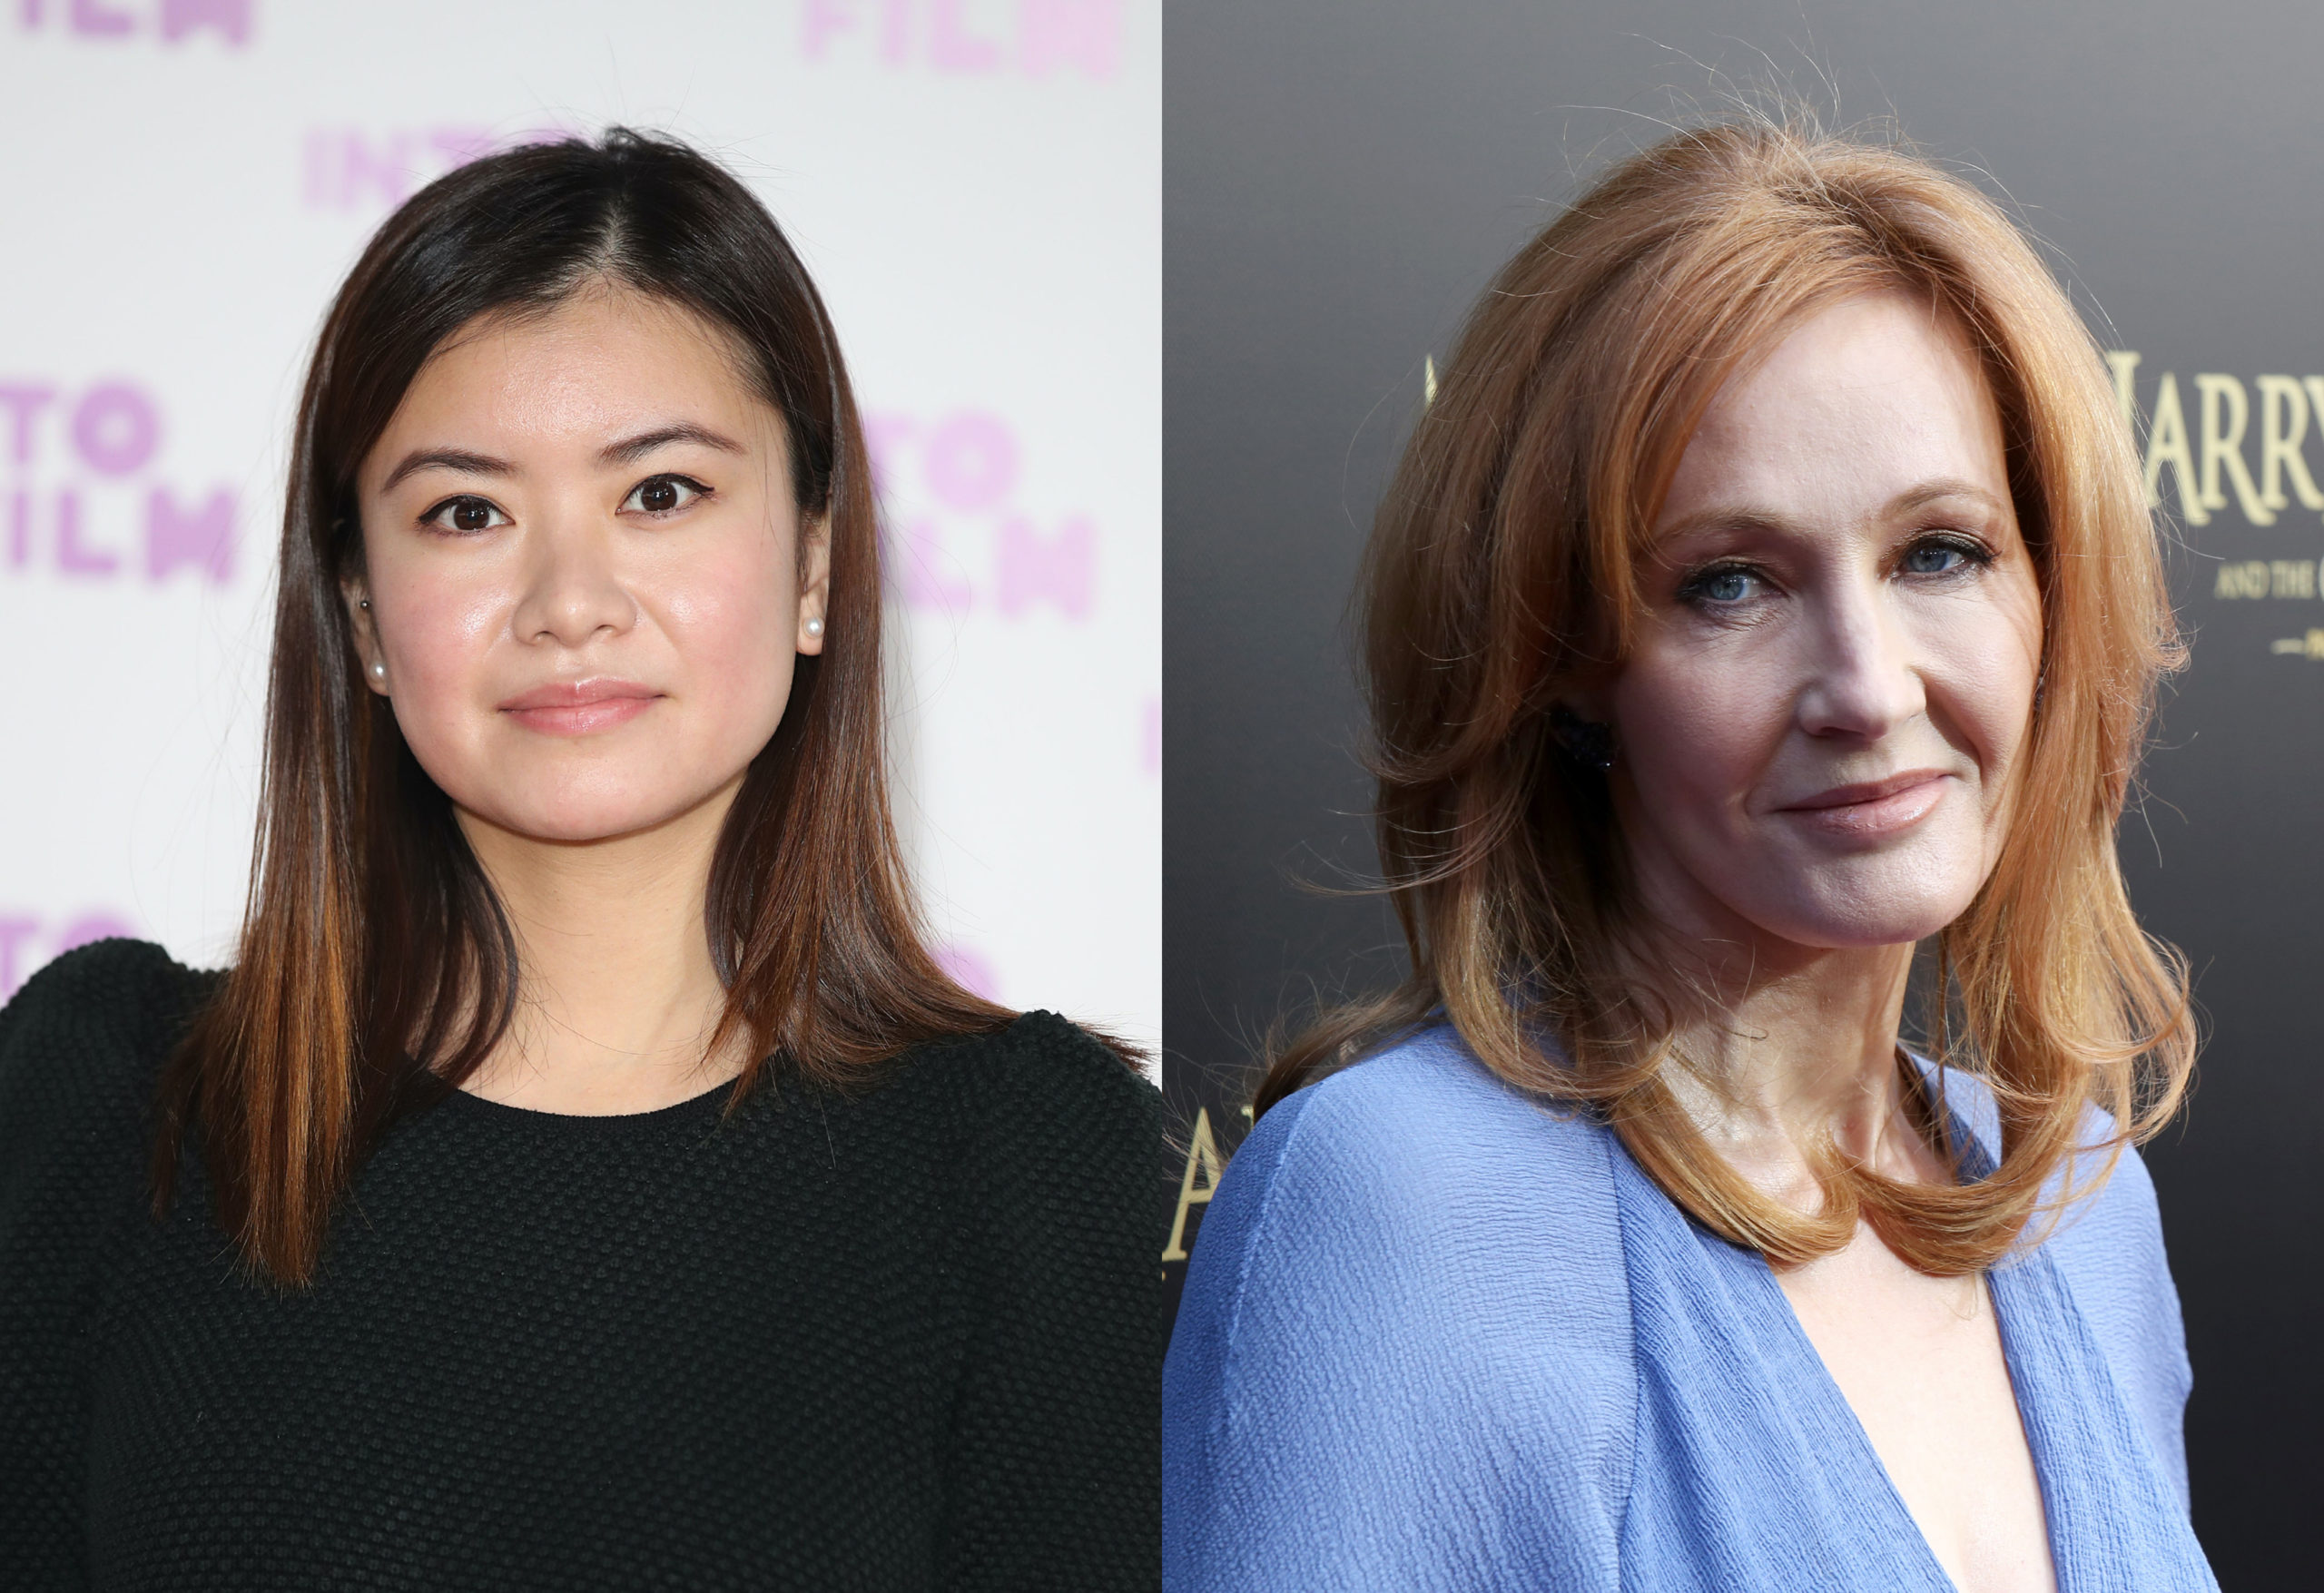 Katie Leung (L) has reacted to the firestorm caused by JK Rowling's comments on the trans community. (Mike Marsland/Mike Marsland/WireImage/Getty)